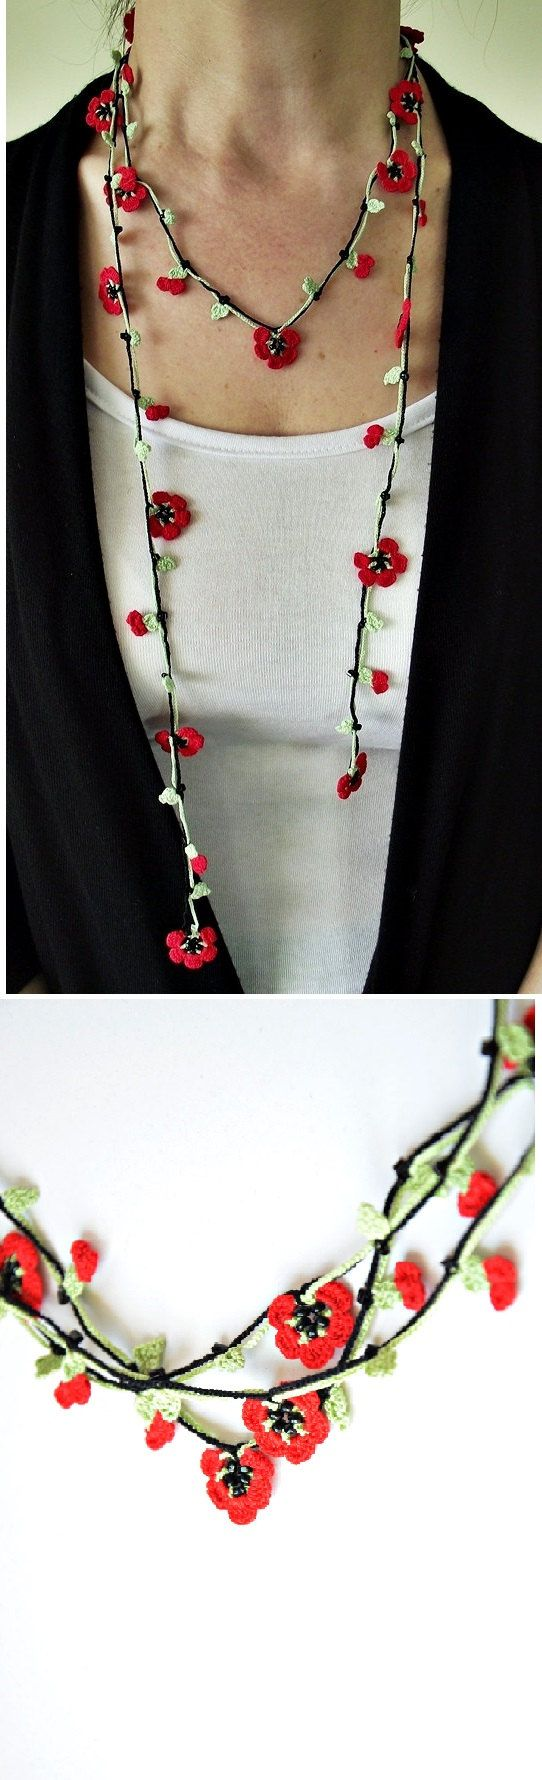 Oya crochet red necklace, Christmas wrap necklace, beaded lariat, womens gift, Turkish flower necklace! Completely handmade crochet oya necklace. Red Flowers and green leaves are made by pearl cotton thread. A unique woman accessory, fashionable gift. The leaves are in green colors and the